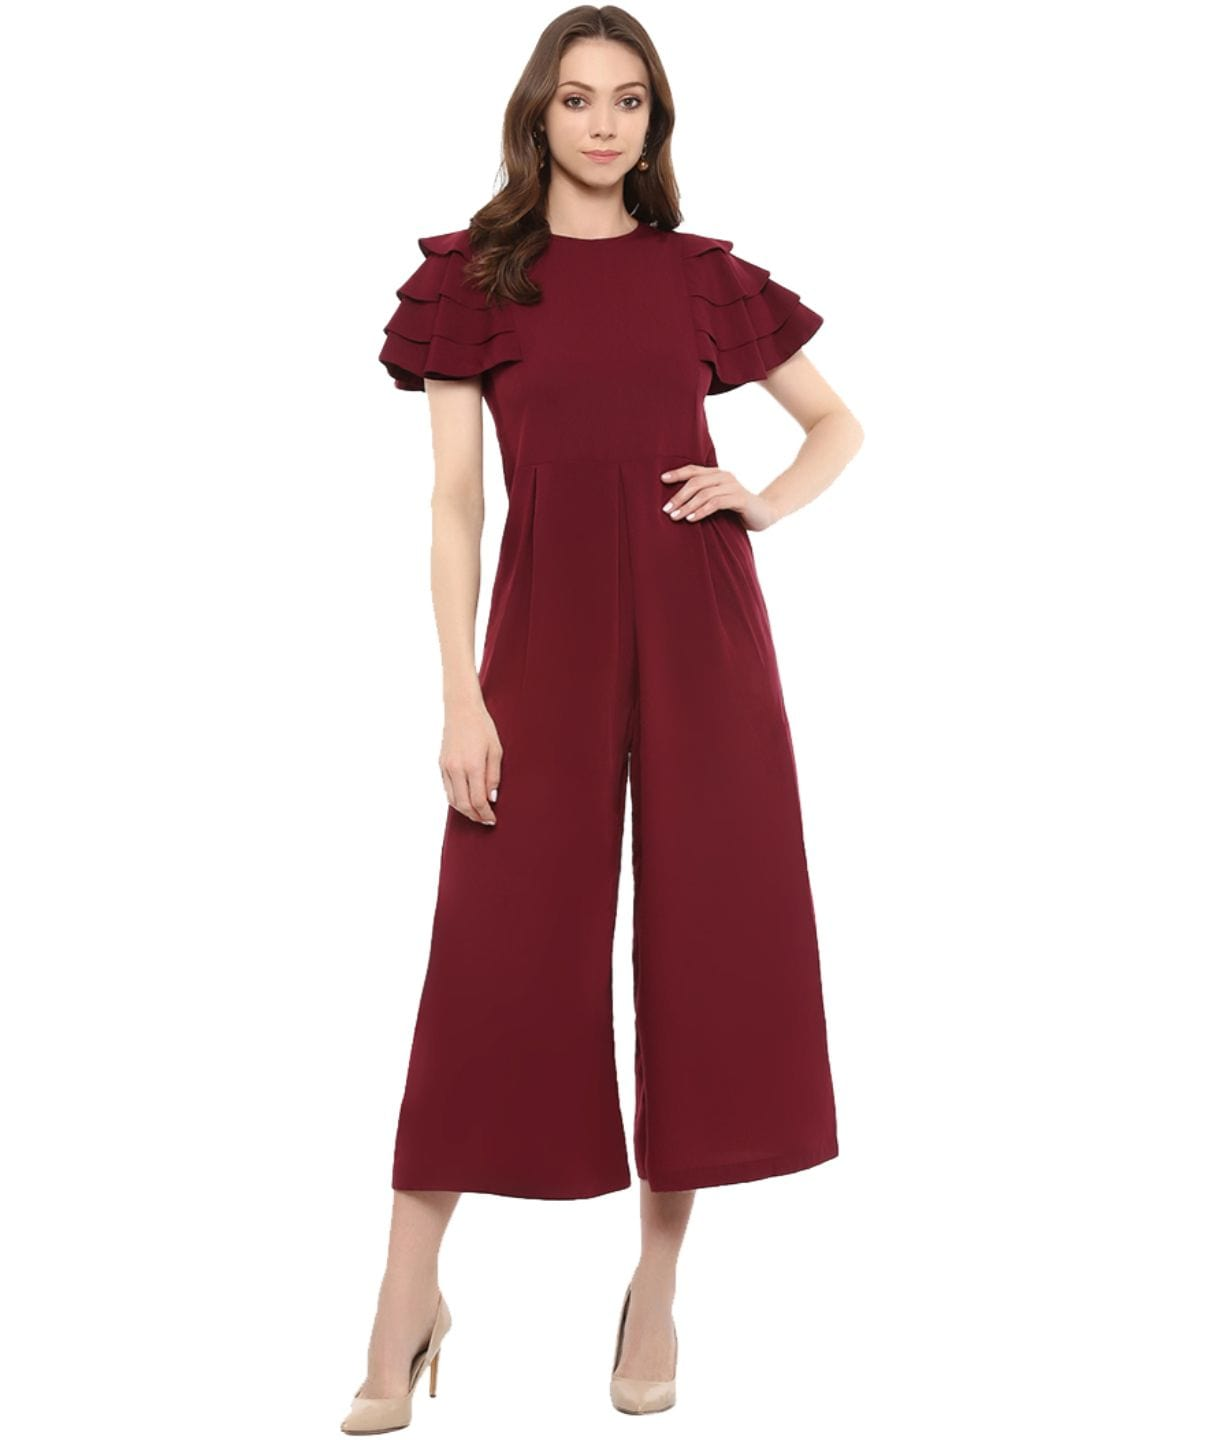 Maroon Solid Relaxed Fit Culotte Jumpsuit With Ruffled Sleeves